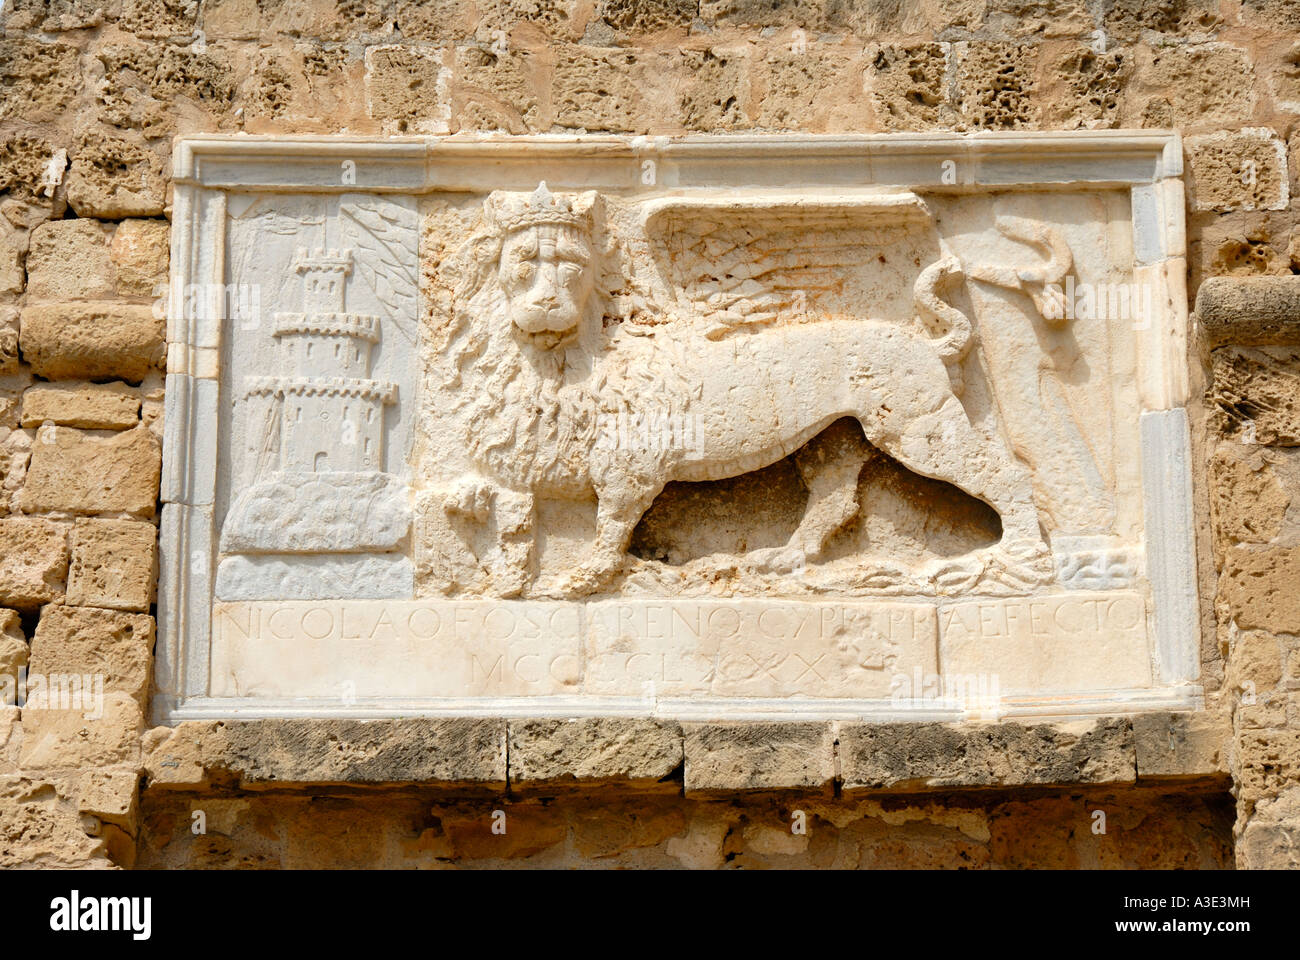 Stone relief Venetian Lion of Markus St Mark at the Othello Tower Famagusta Gazimagusa North Cyprus - Stock Image